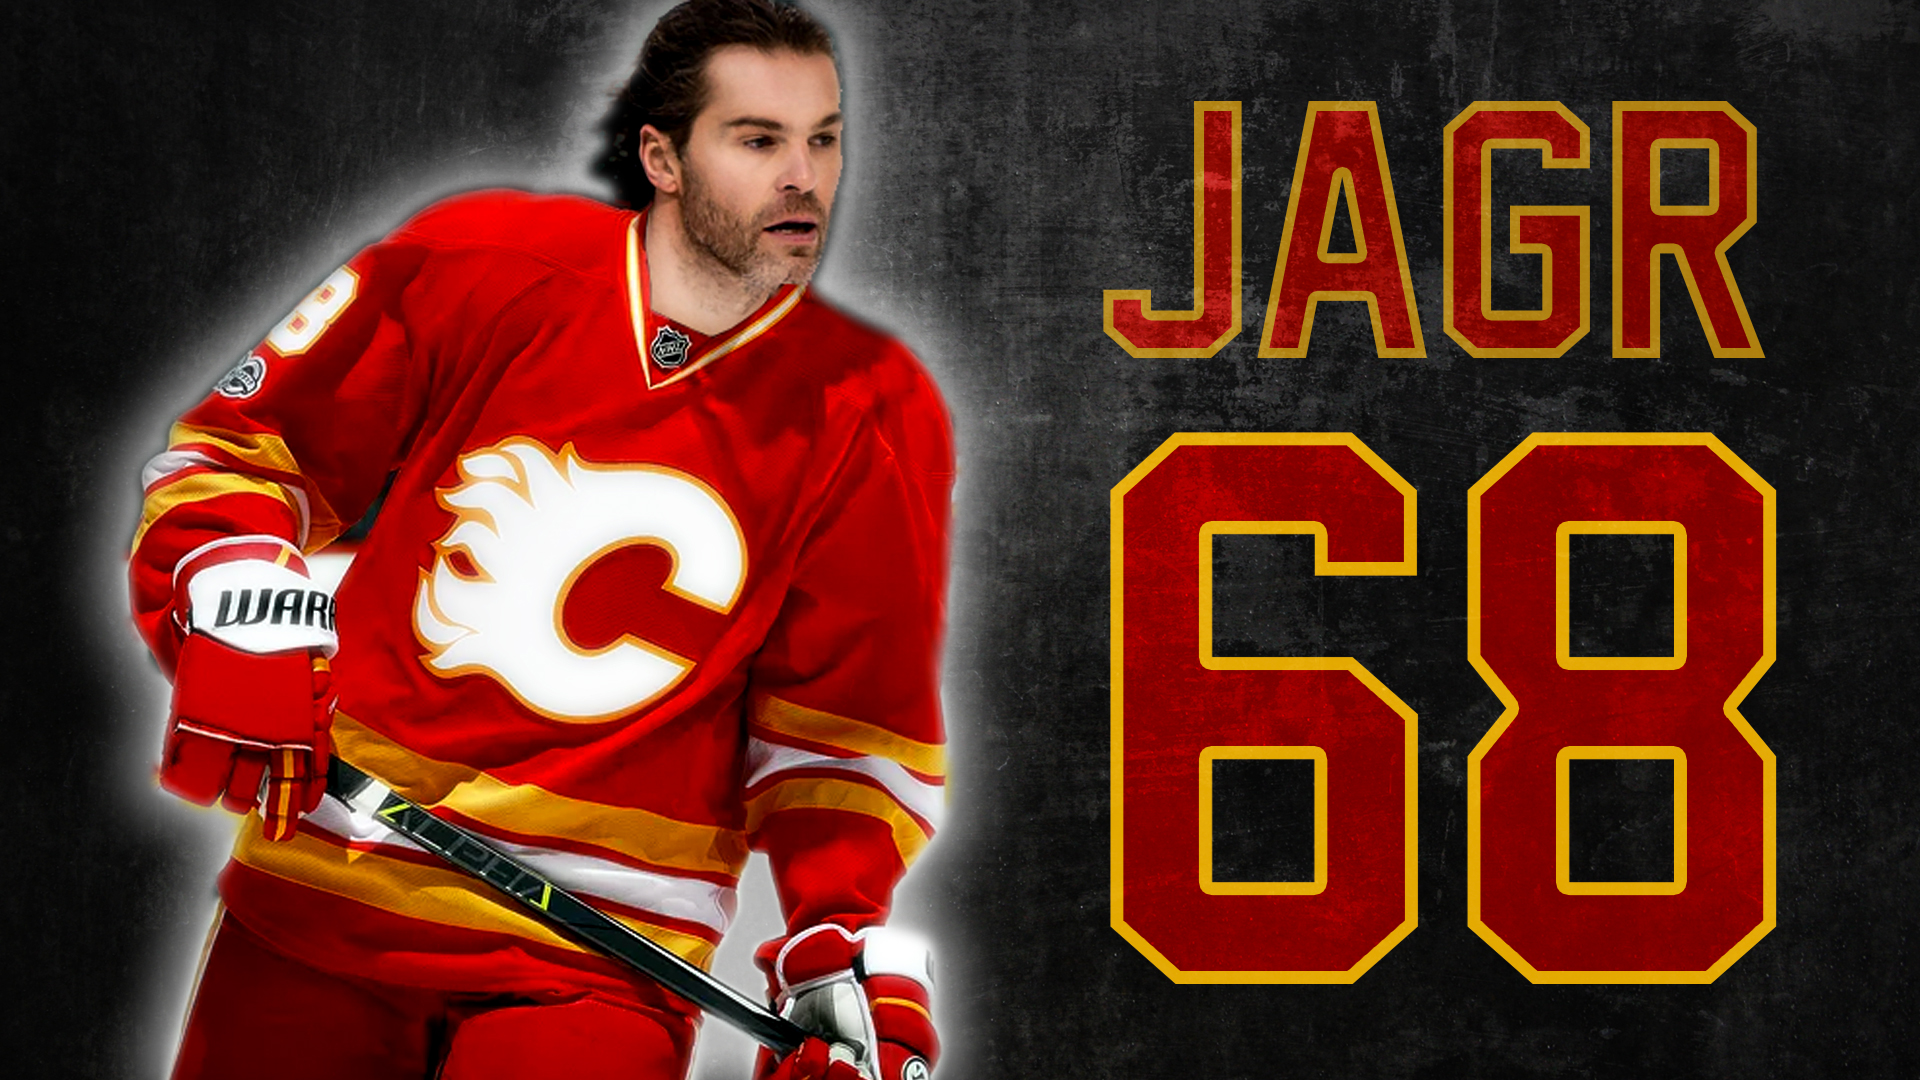 Jaromir Jagr Flames Wallpapers : CalgaryFlames